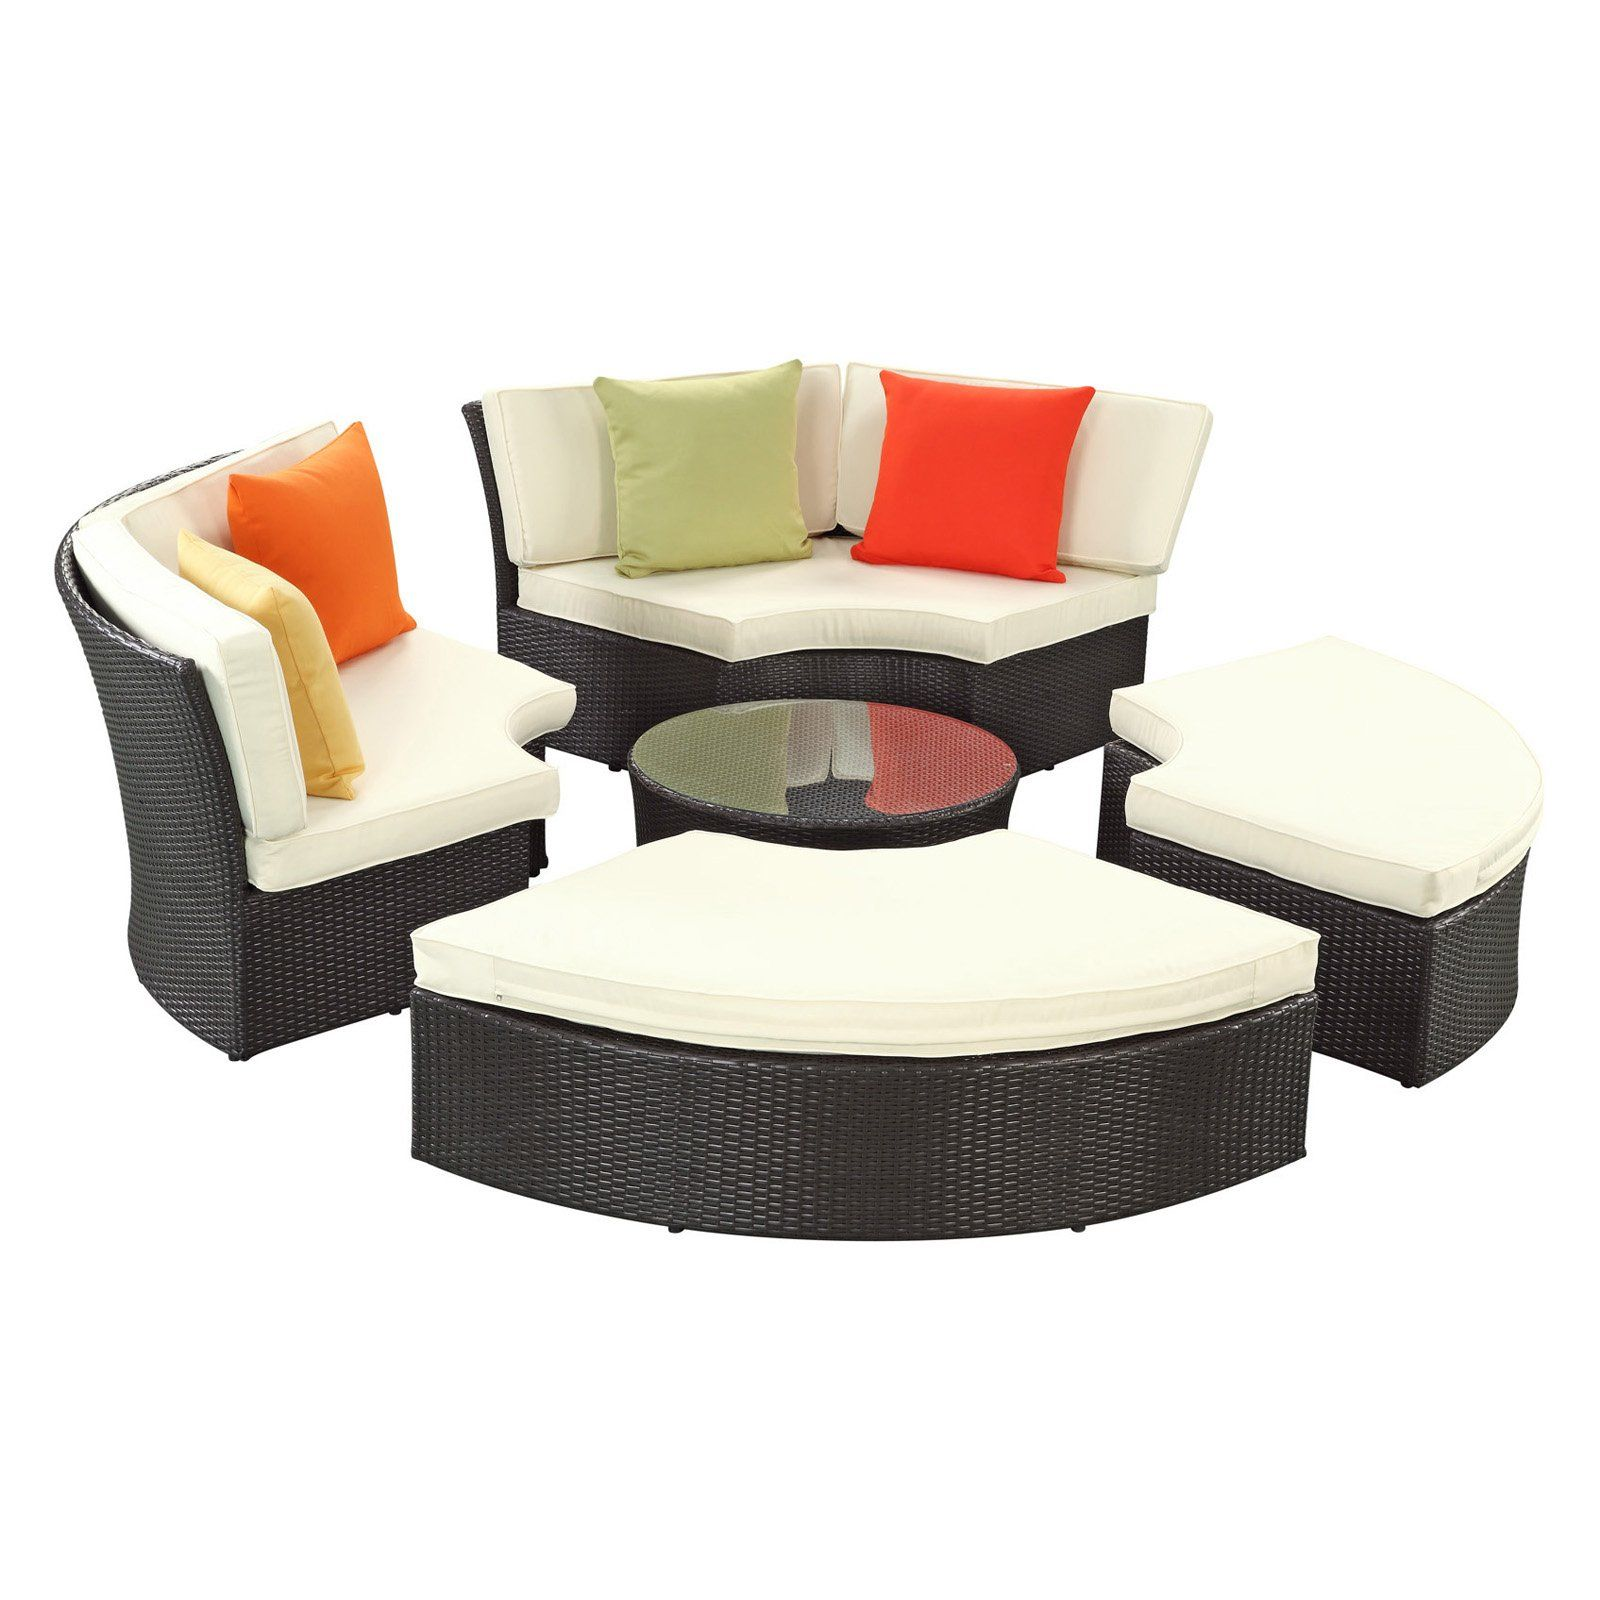 Have To Have It Pursuit All Weather Wicker Circular Daybed 1450 Daybed Sets Contemporary Outdoor Sofas Modern Outdoor Sofas